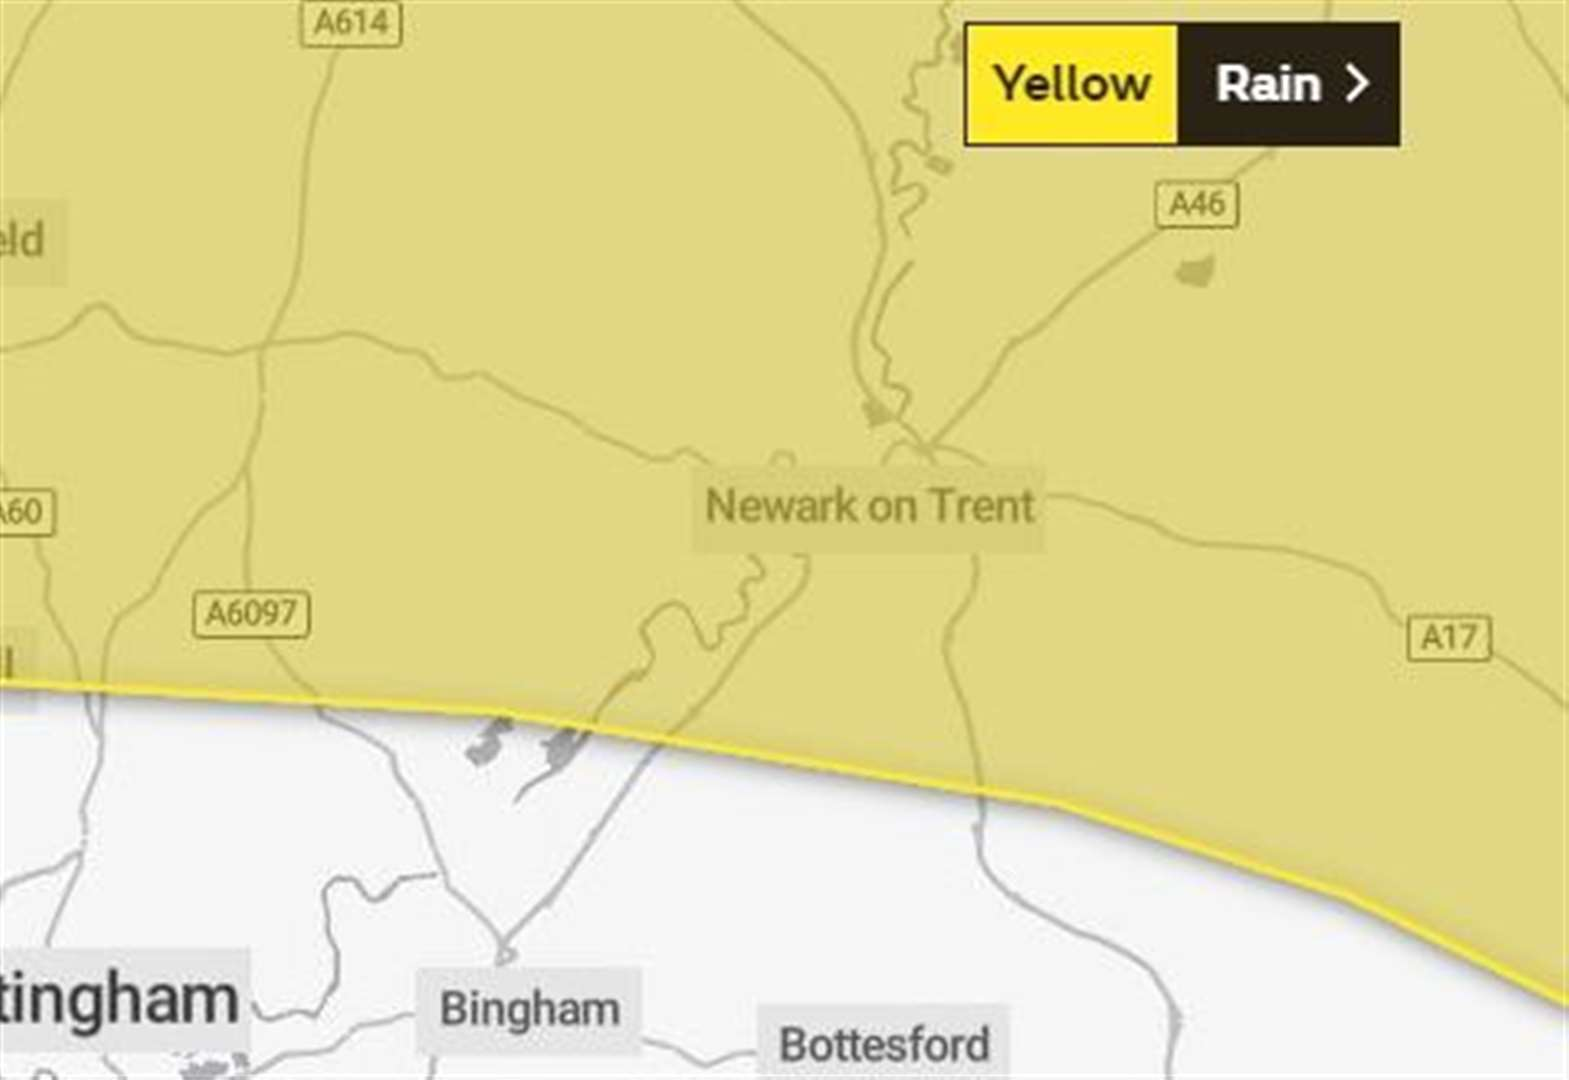 Weather warning issued for Newark